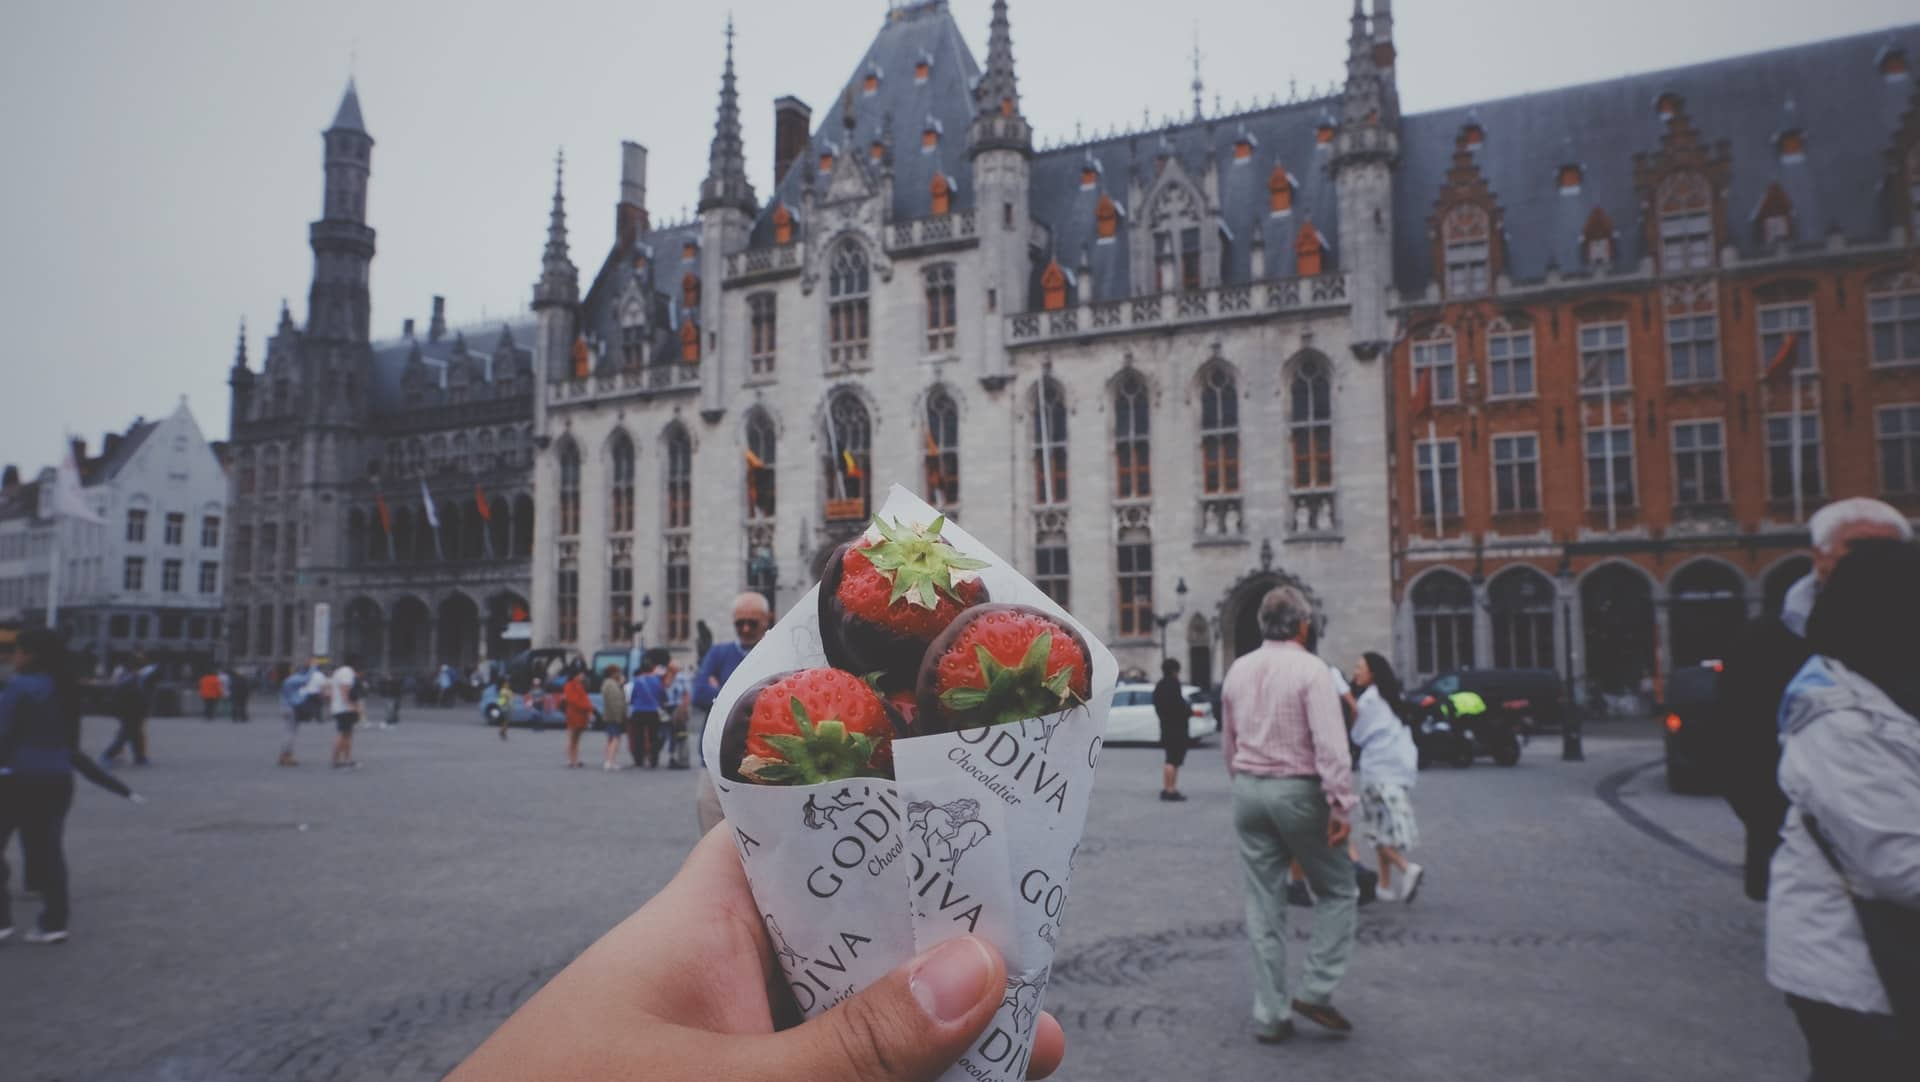 Cup of strawberries and chocolate with historical buildings of Belgium in the backgound on a grey day